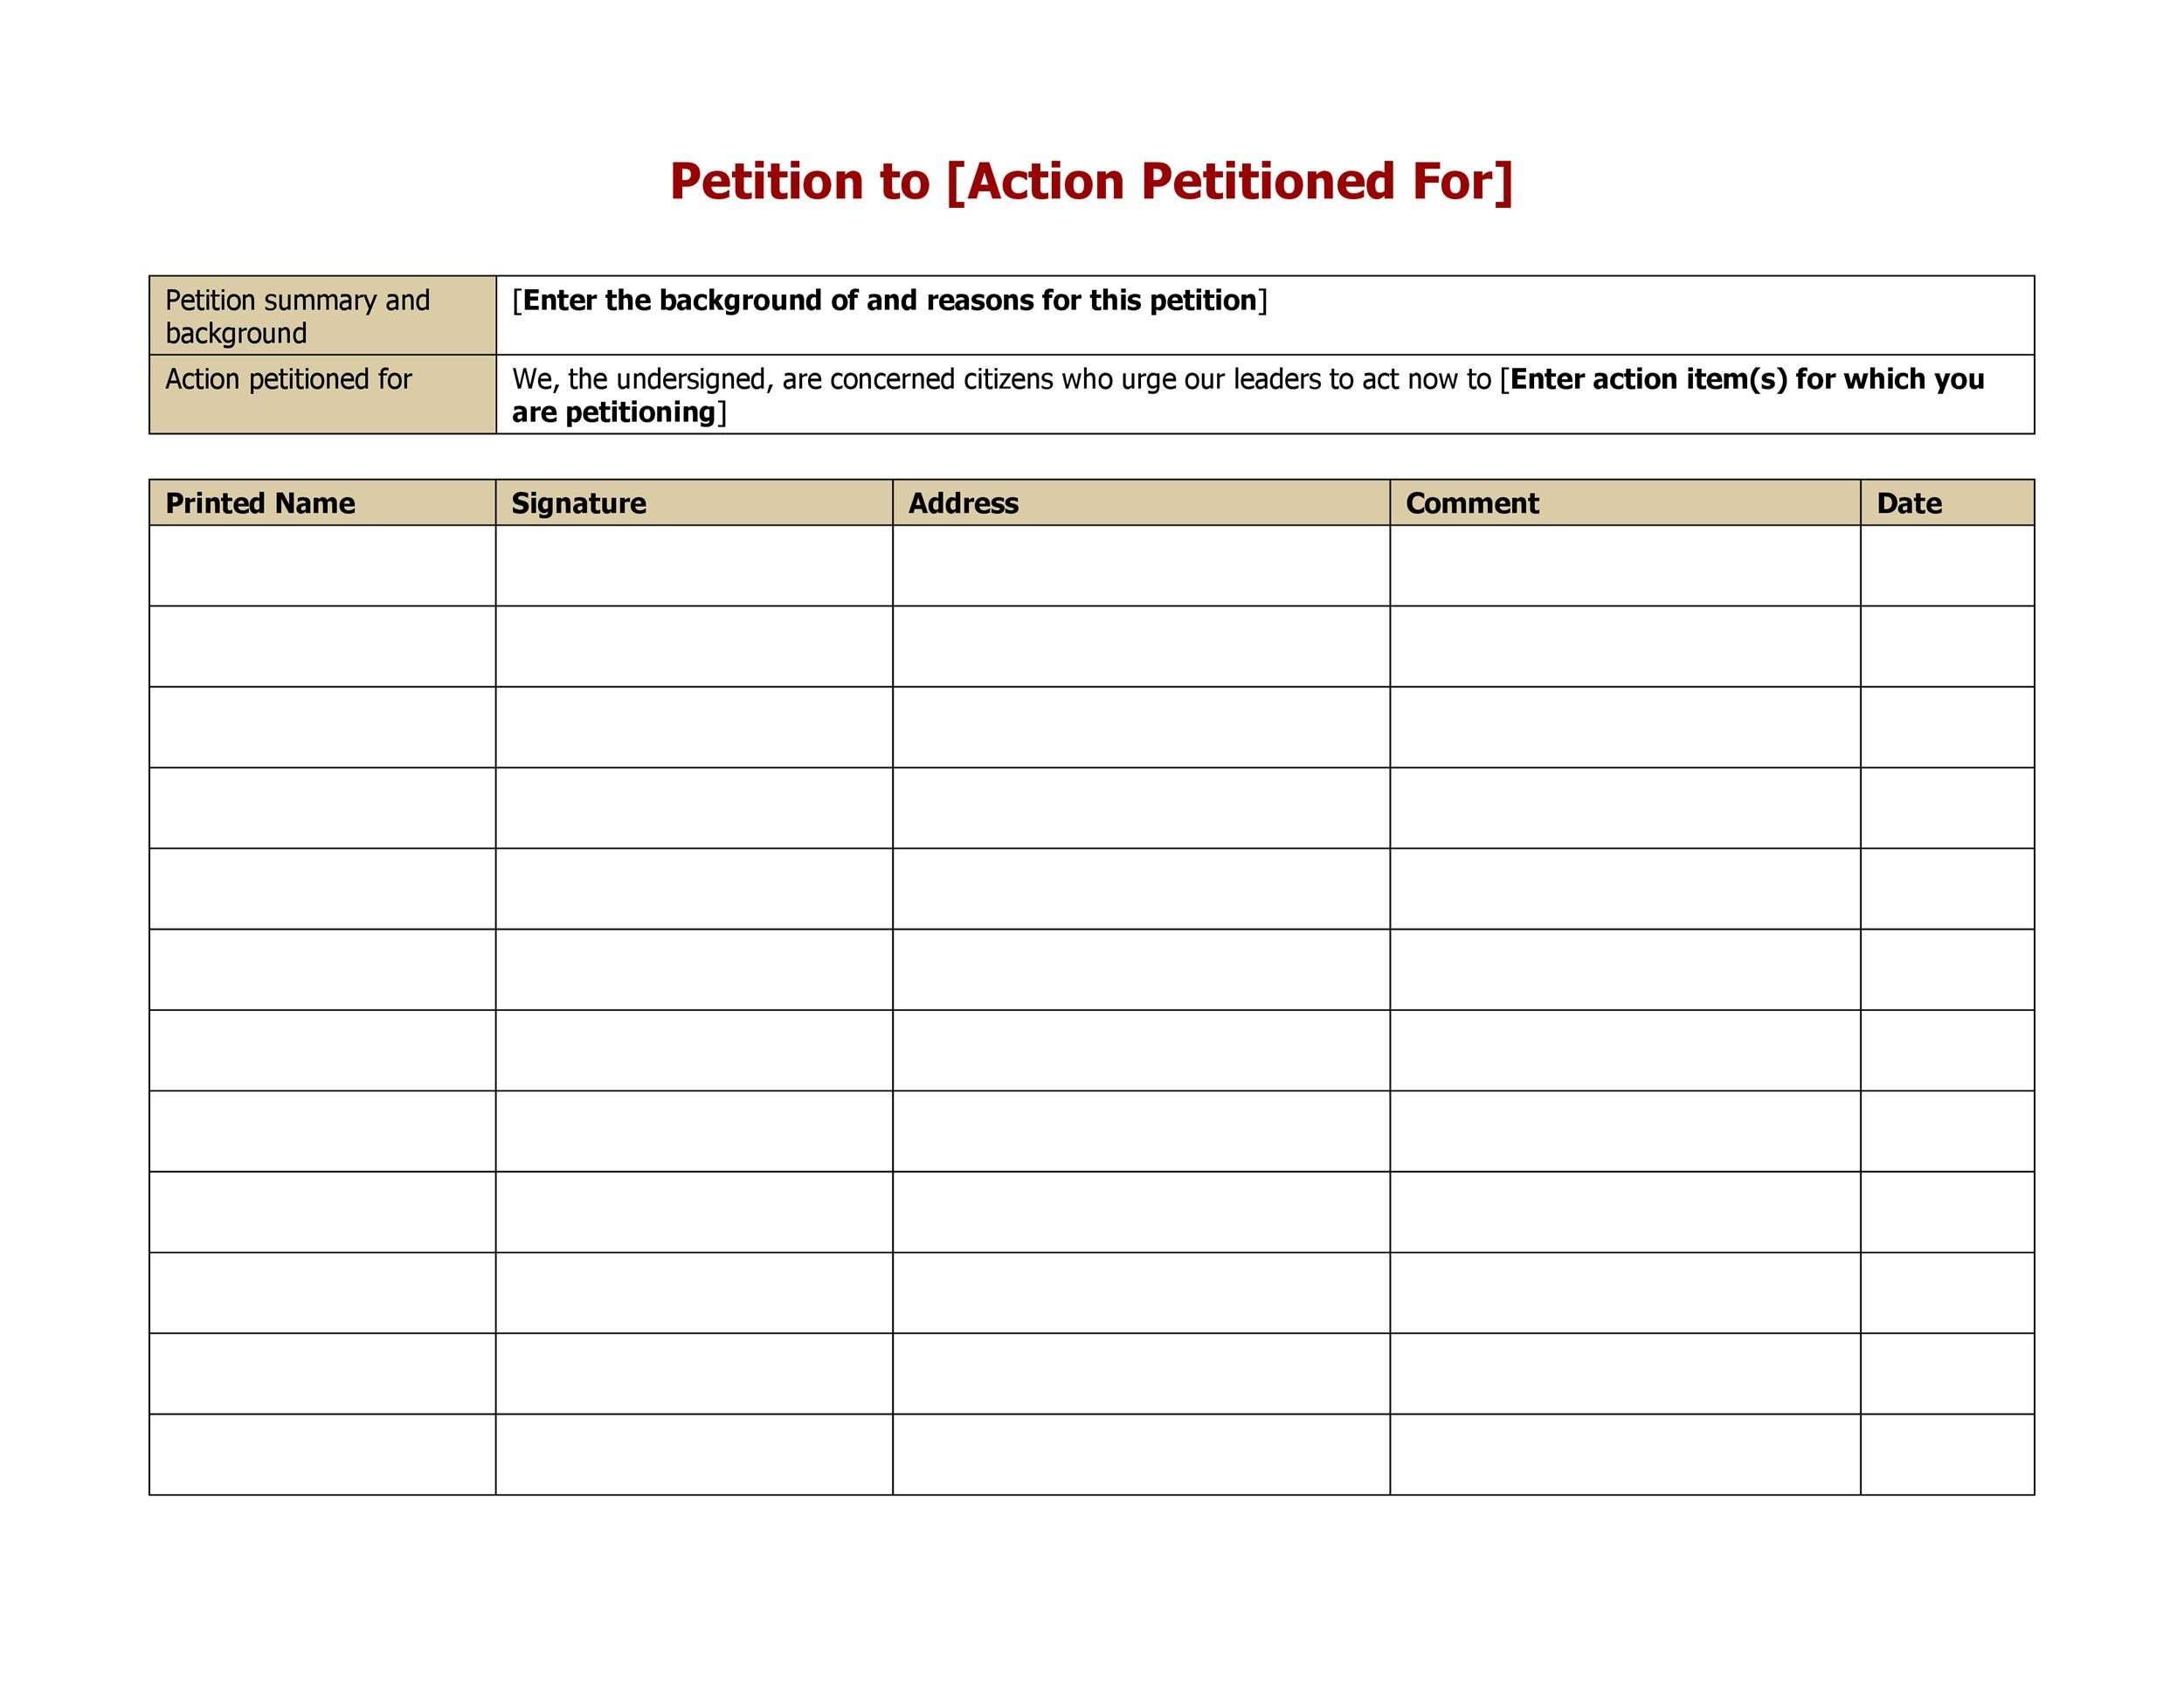 Law Papers To Sign Copy For Wedding: 30 Petition Templates + How To Write Petition Guide